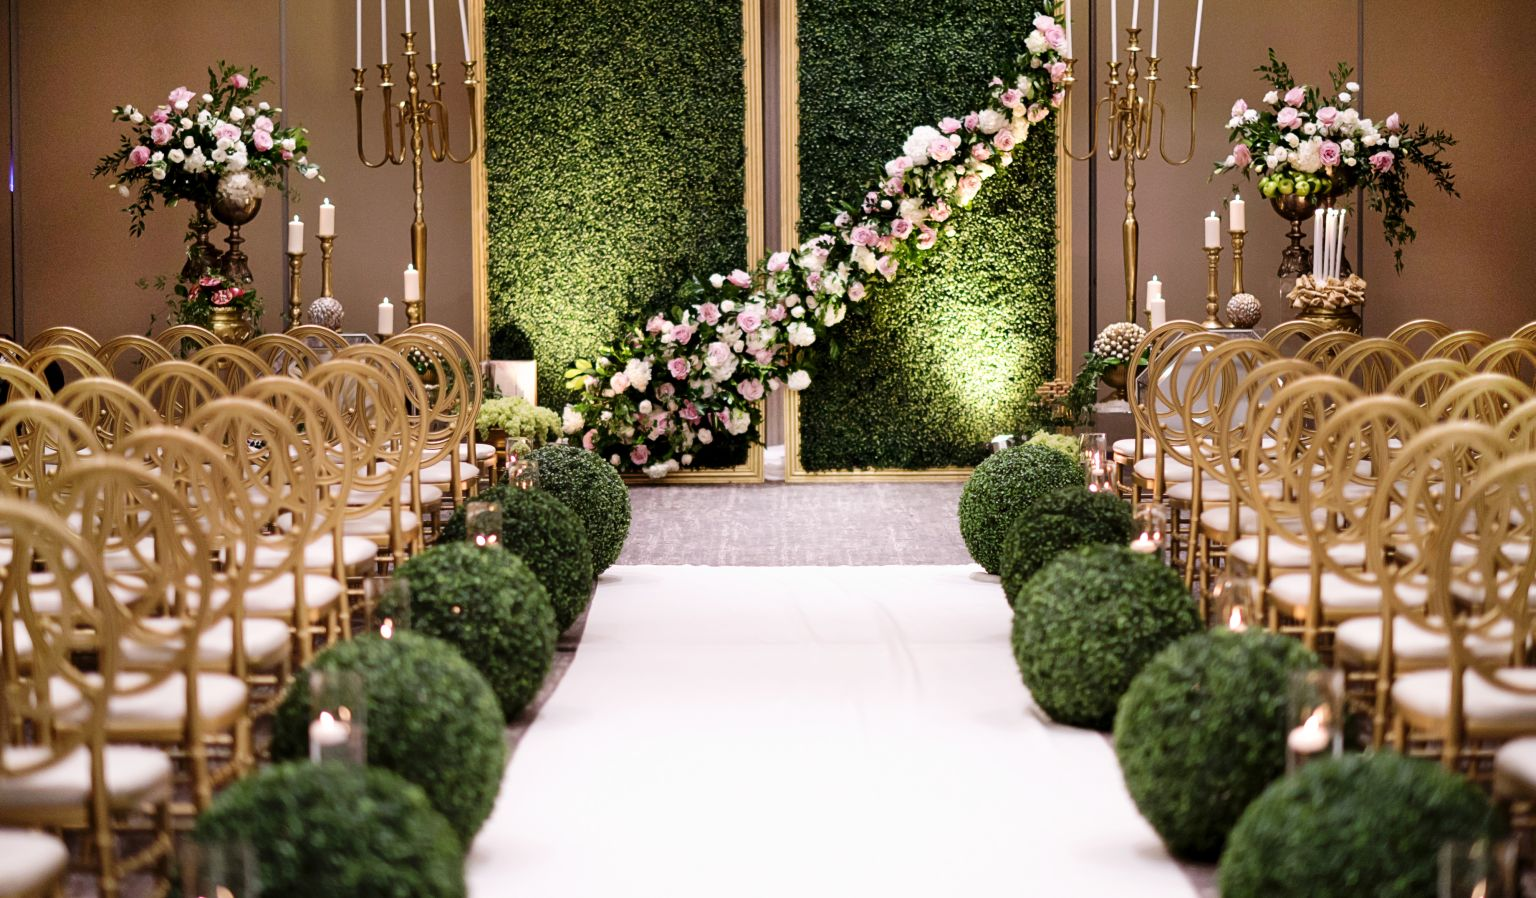 hotel interior wedding ceremony space